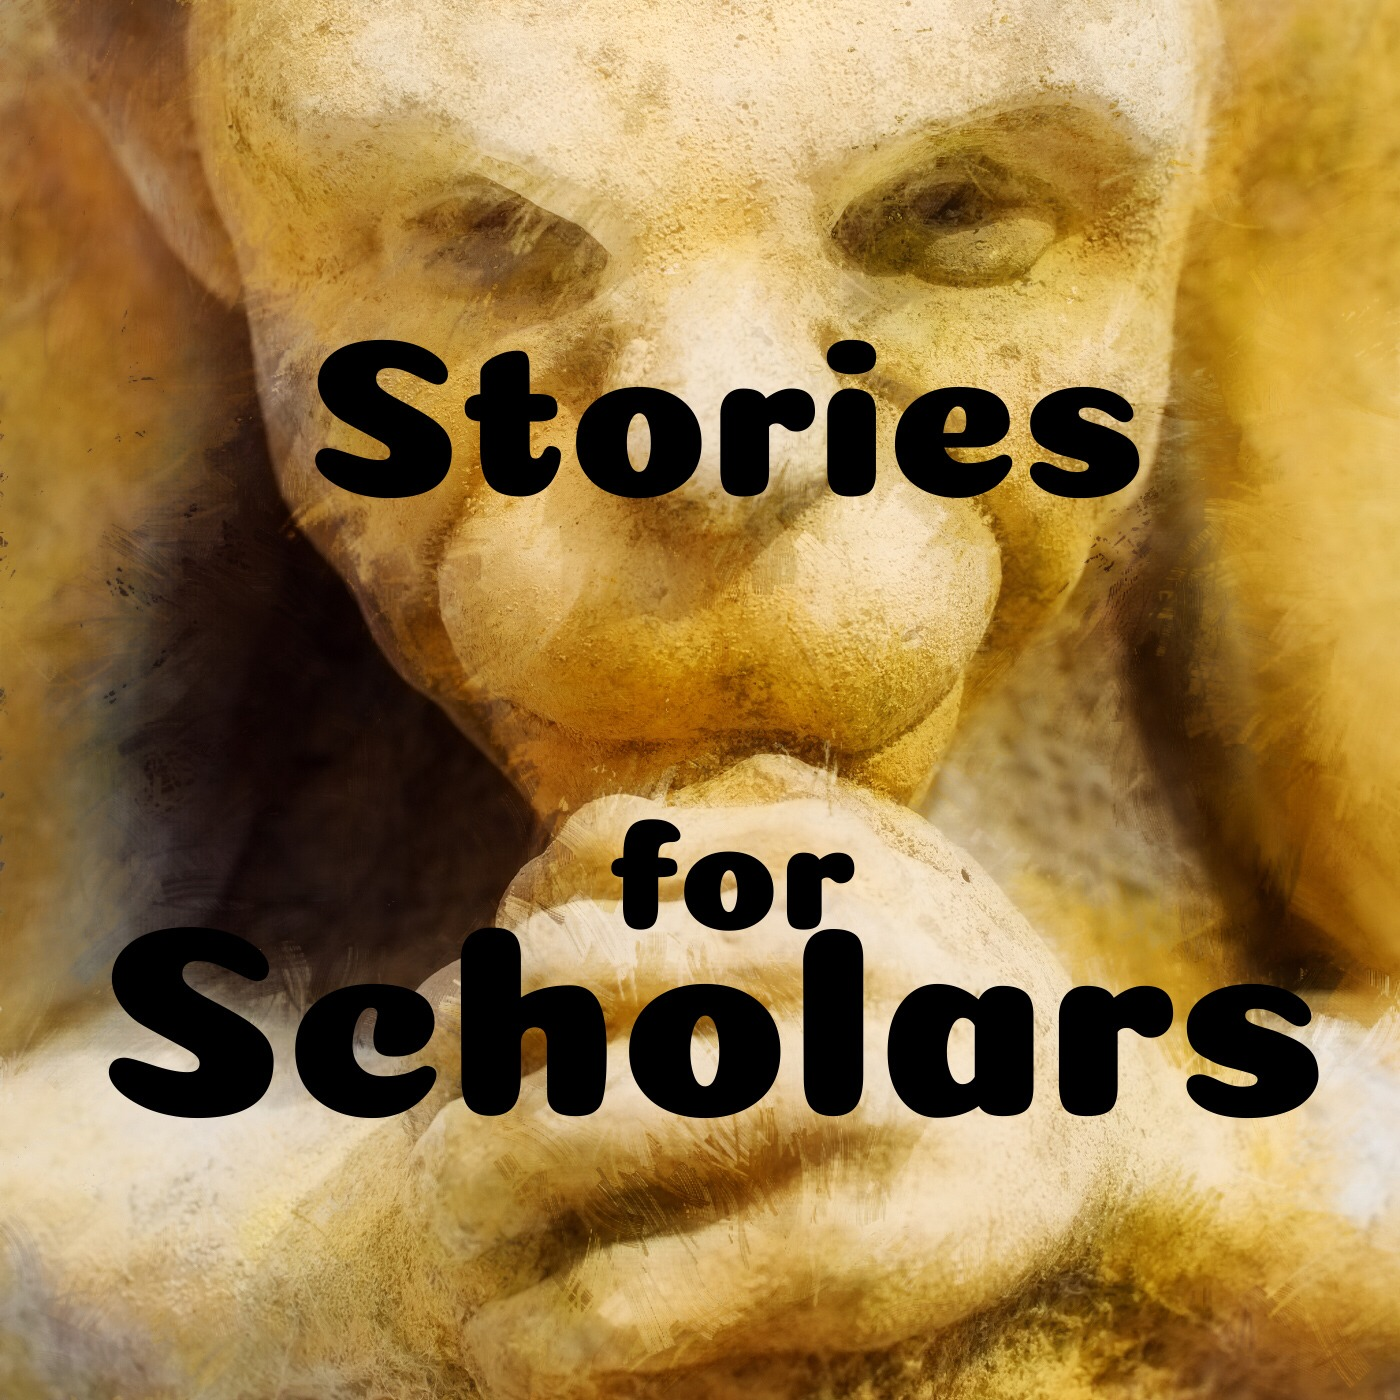 Stories for Scholars Ep. 2 - White Hare, Vol. II